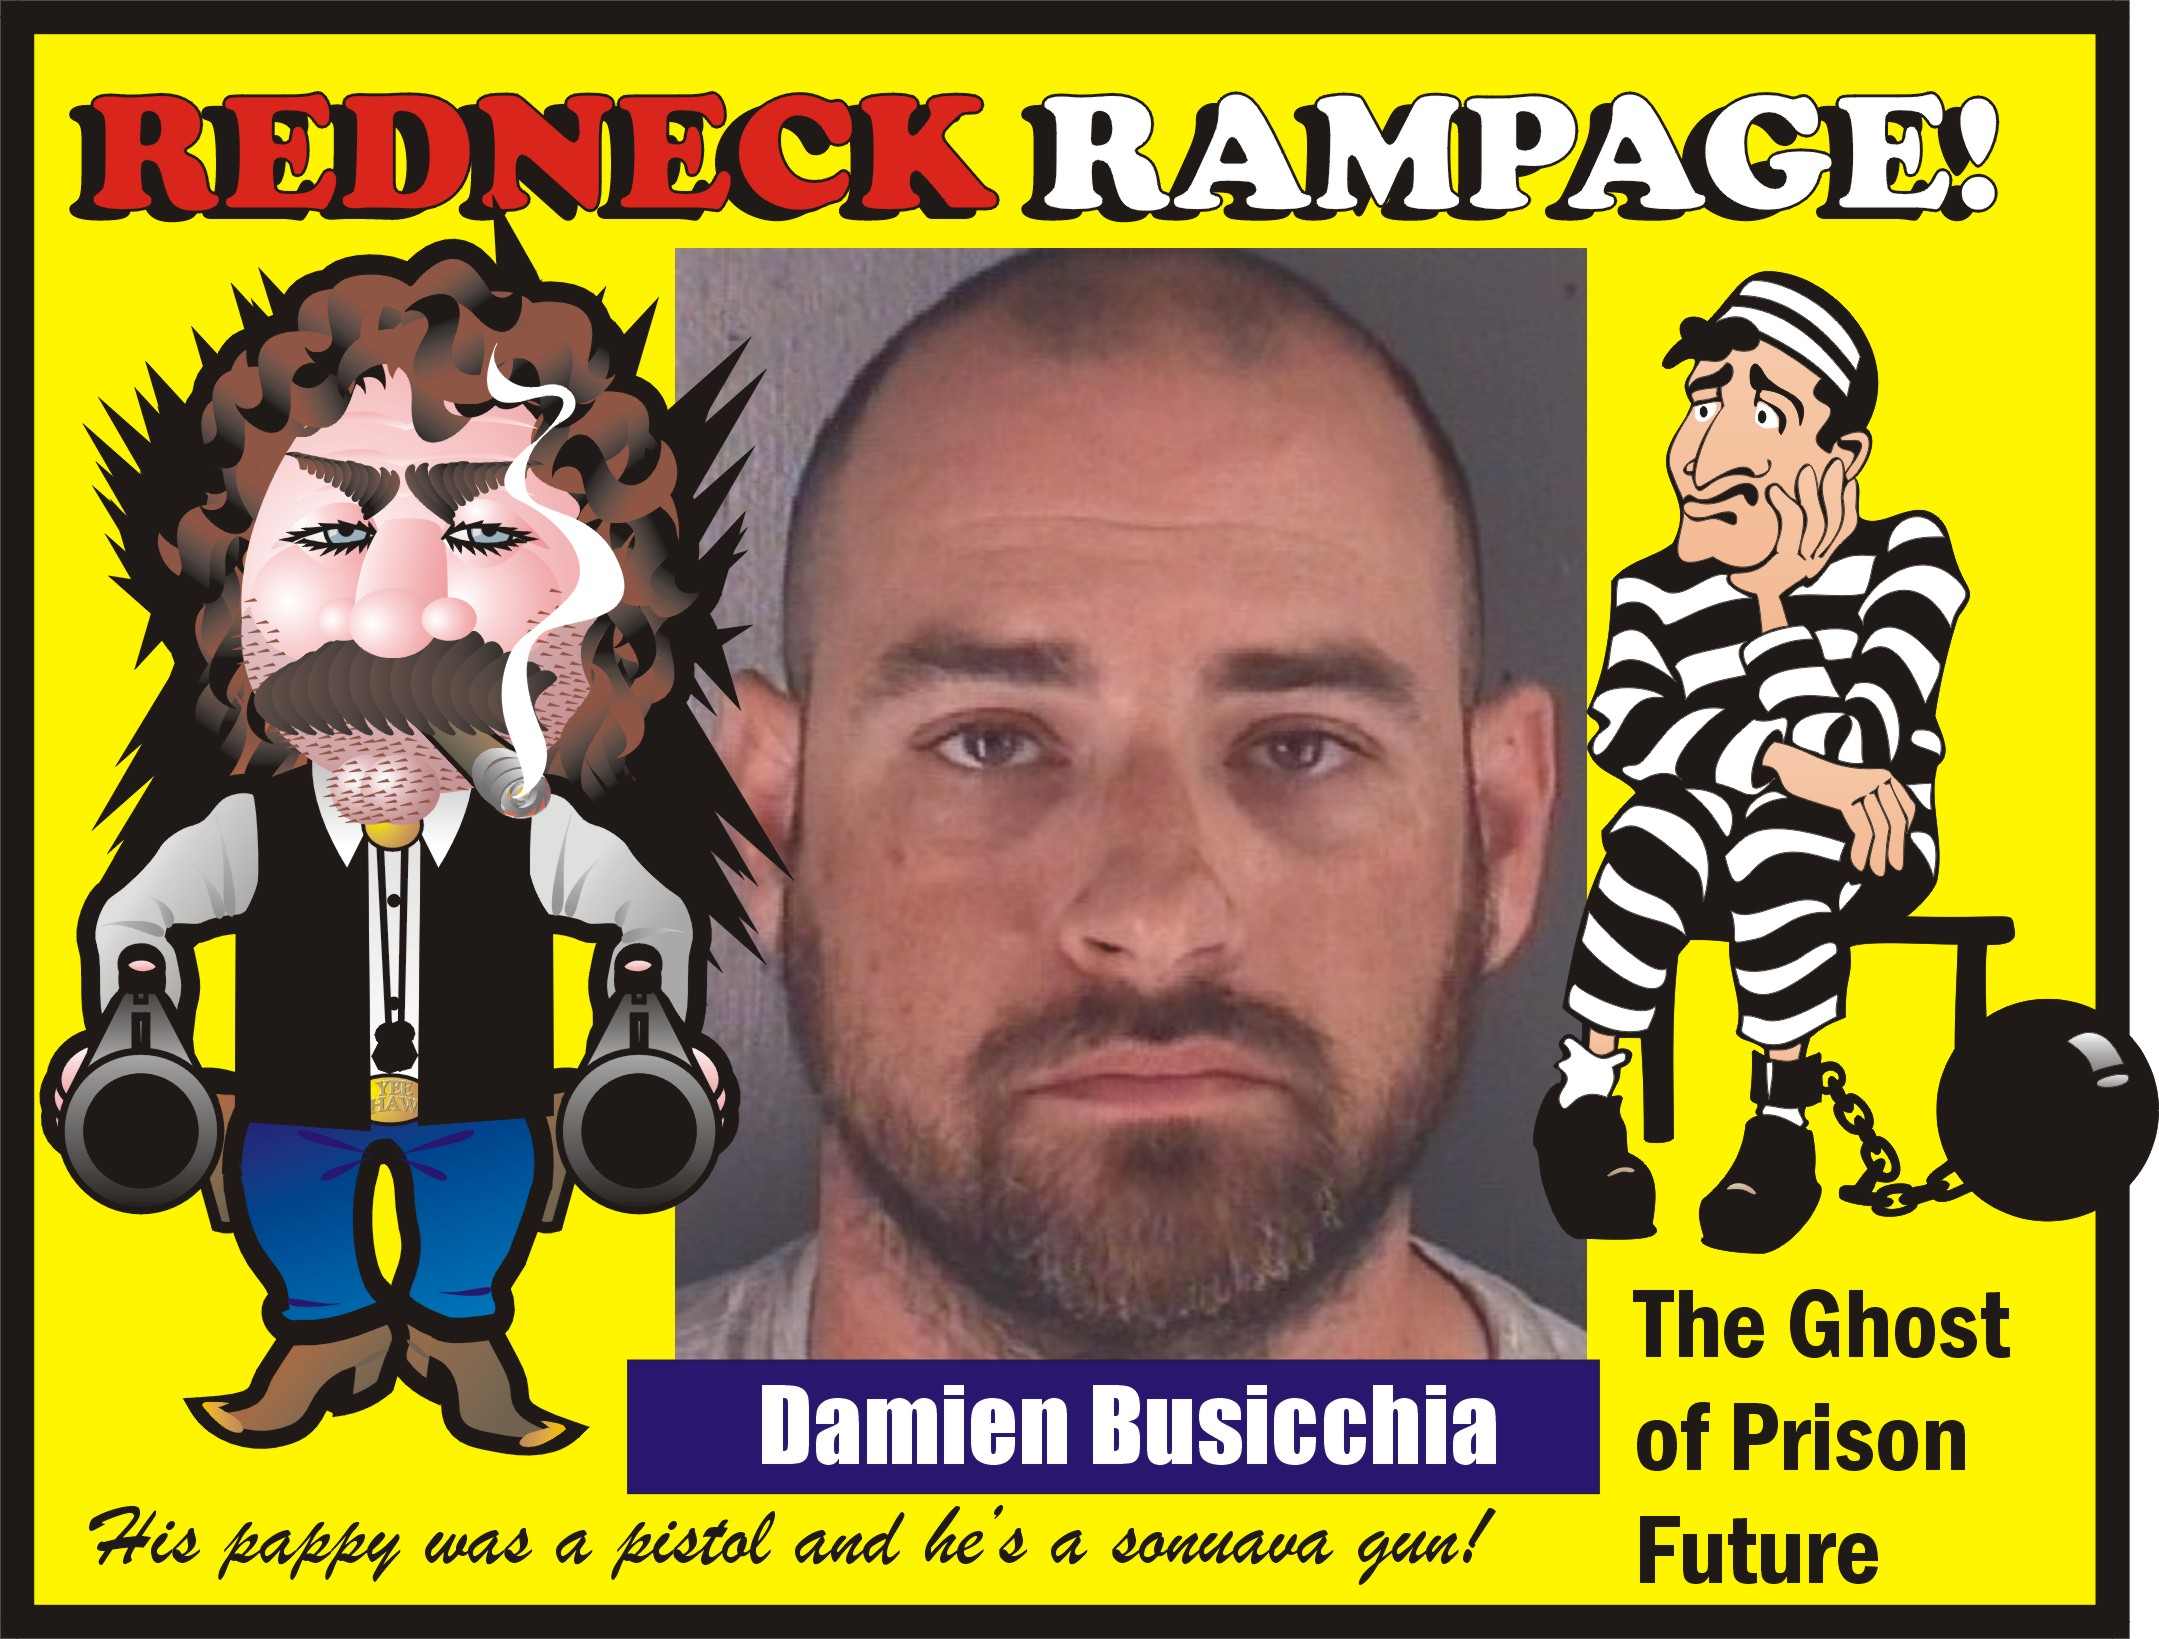 REDNECK RAMPAGE! Damien Patrick Busicchia rounded up after blasting off shots in road rage mania